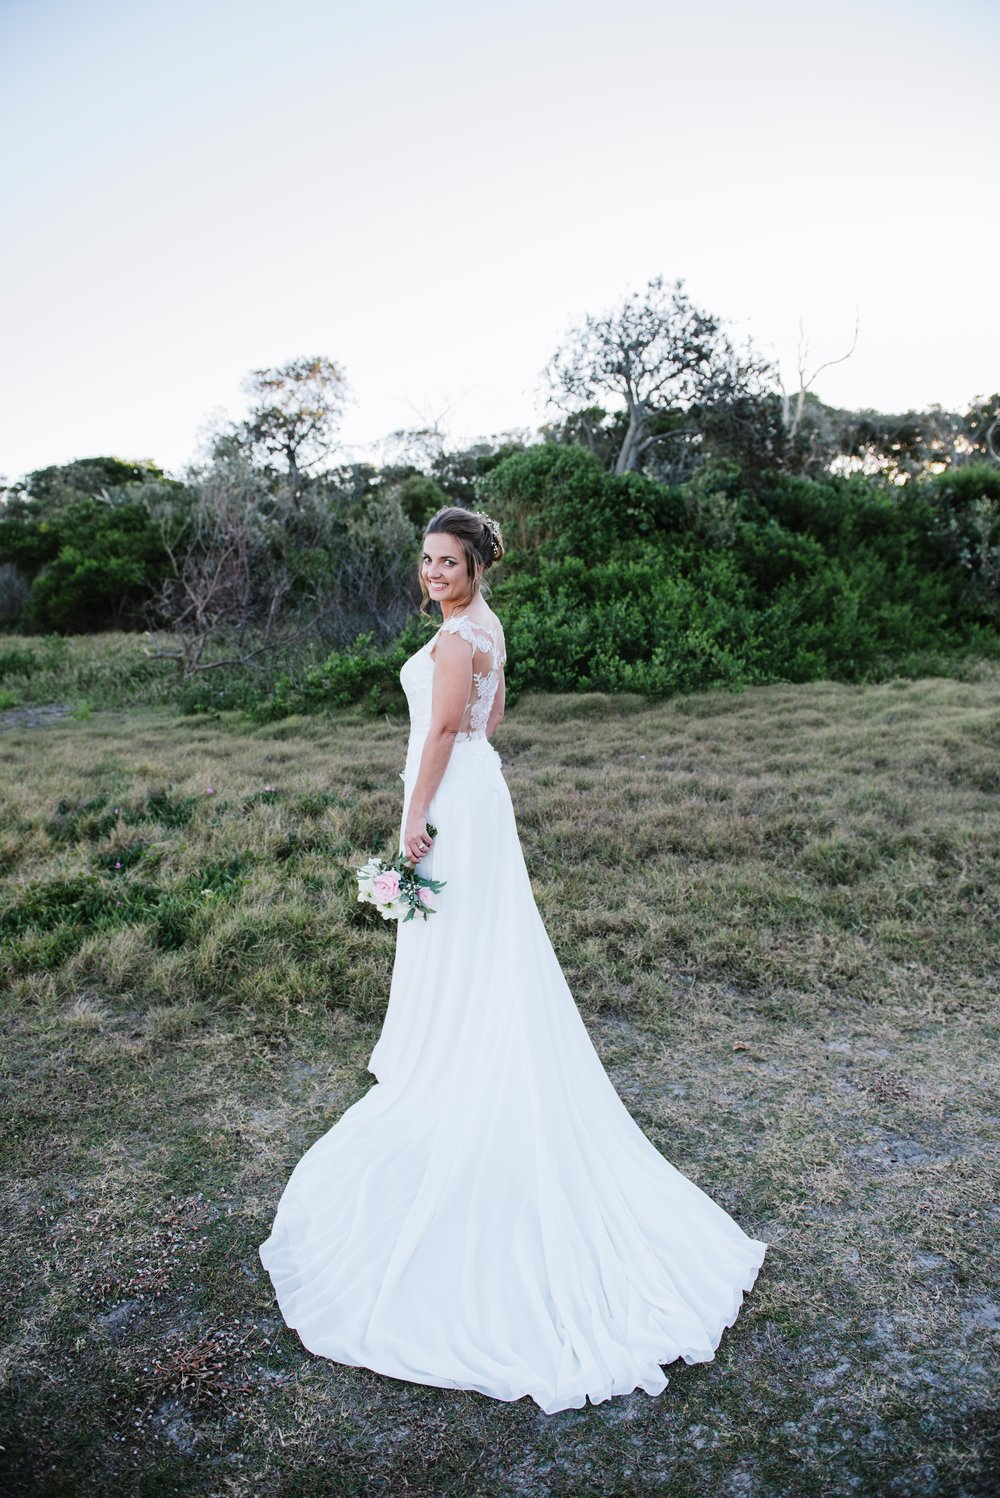 Am and Sam- skyla sage photography weddings, families, byron bay,tweed coast,kingscliff,cabarita,gold coast-479.jpg